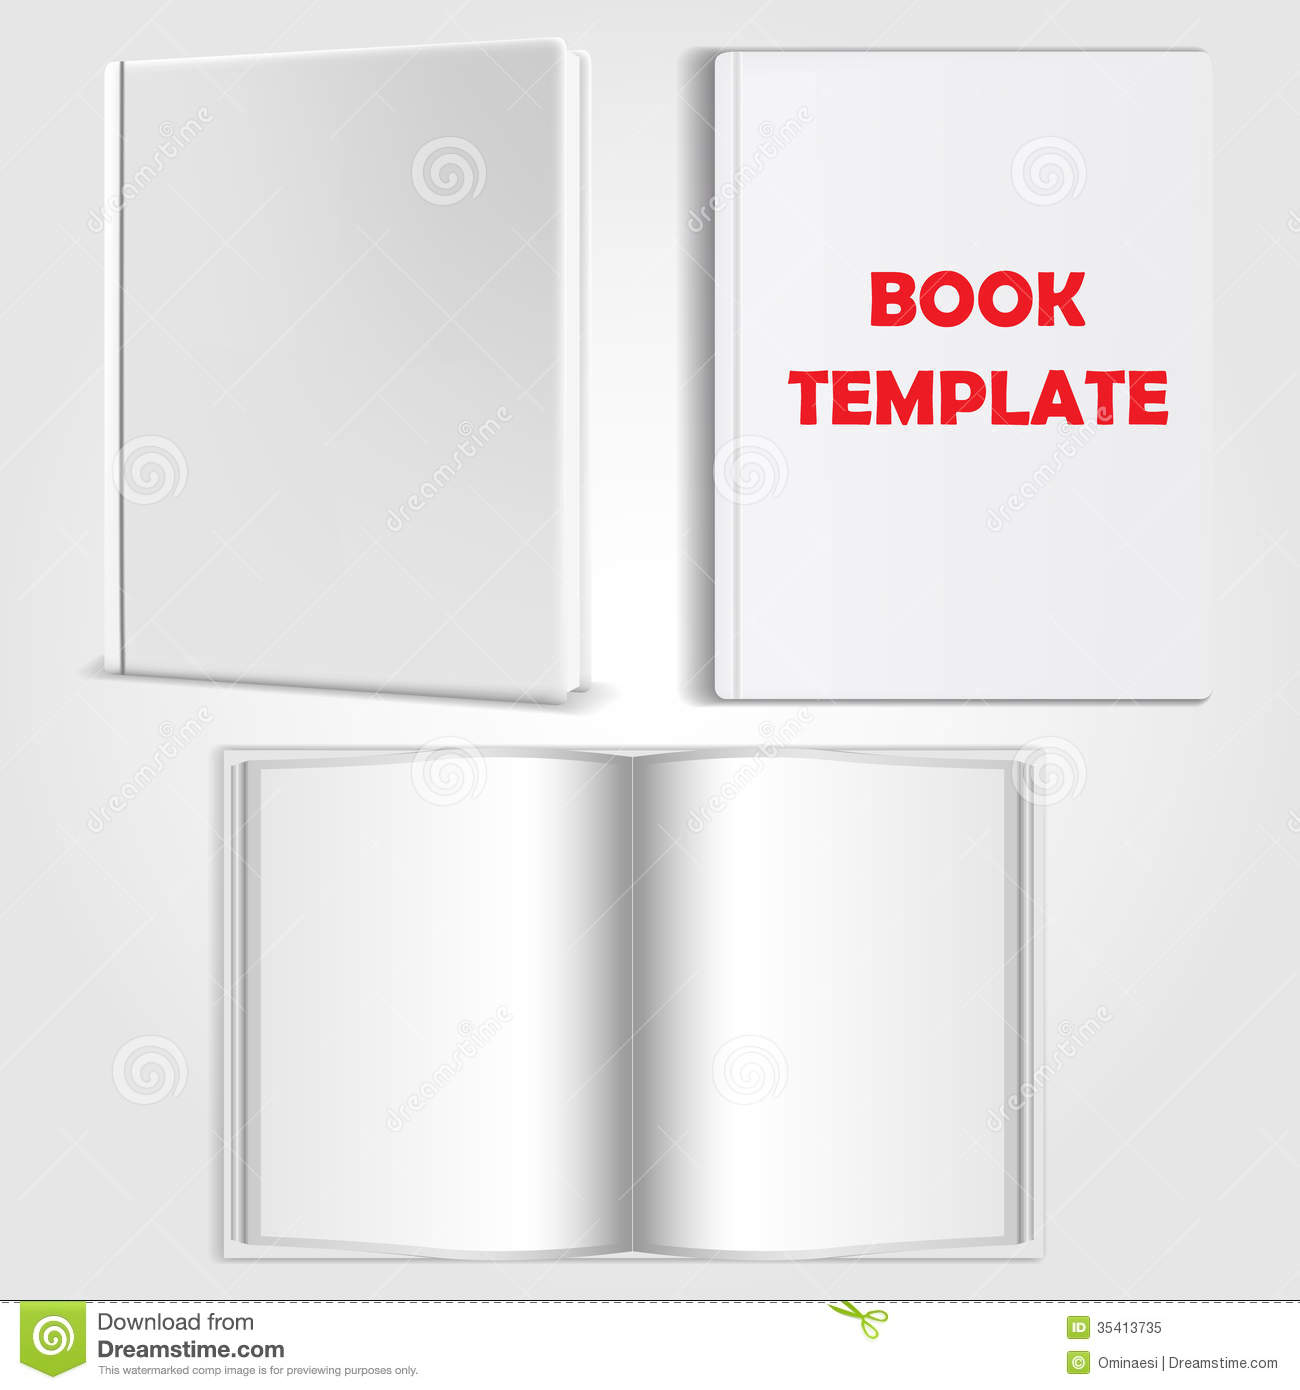 Book Template Vector Royalty Free Stock Photo Image